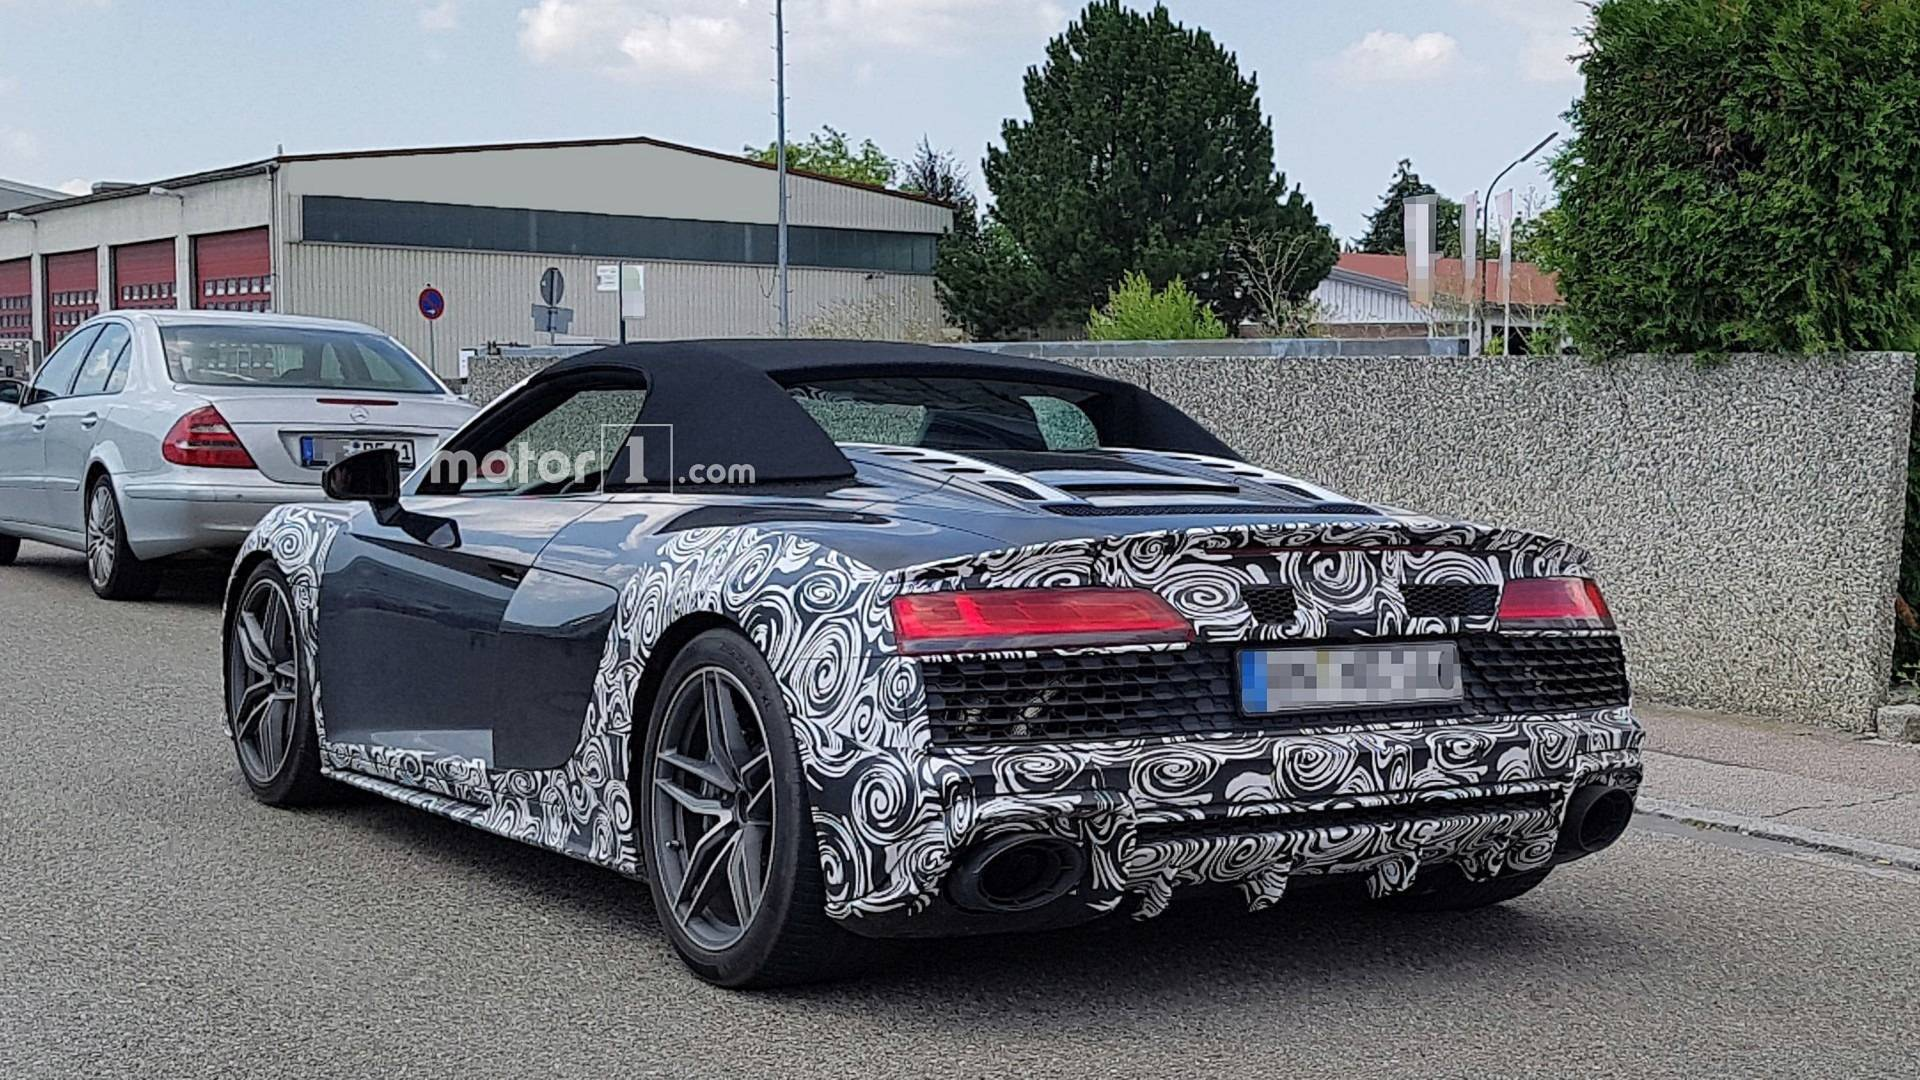 2015 - [Audi] R8 II / R8 II Spider - Page 14 2019-audi-r8-spyder-facelift-spy-photo